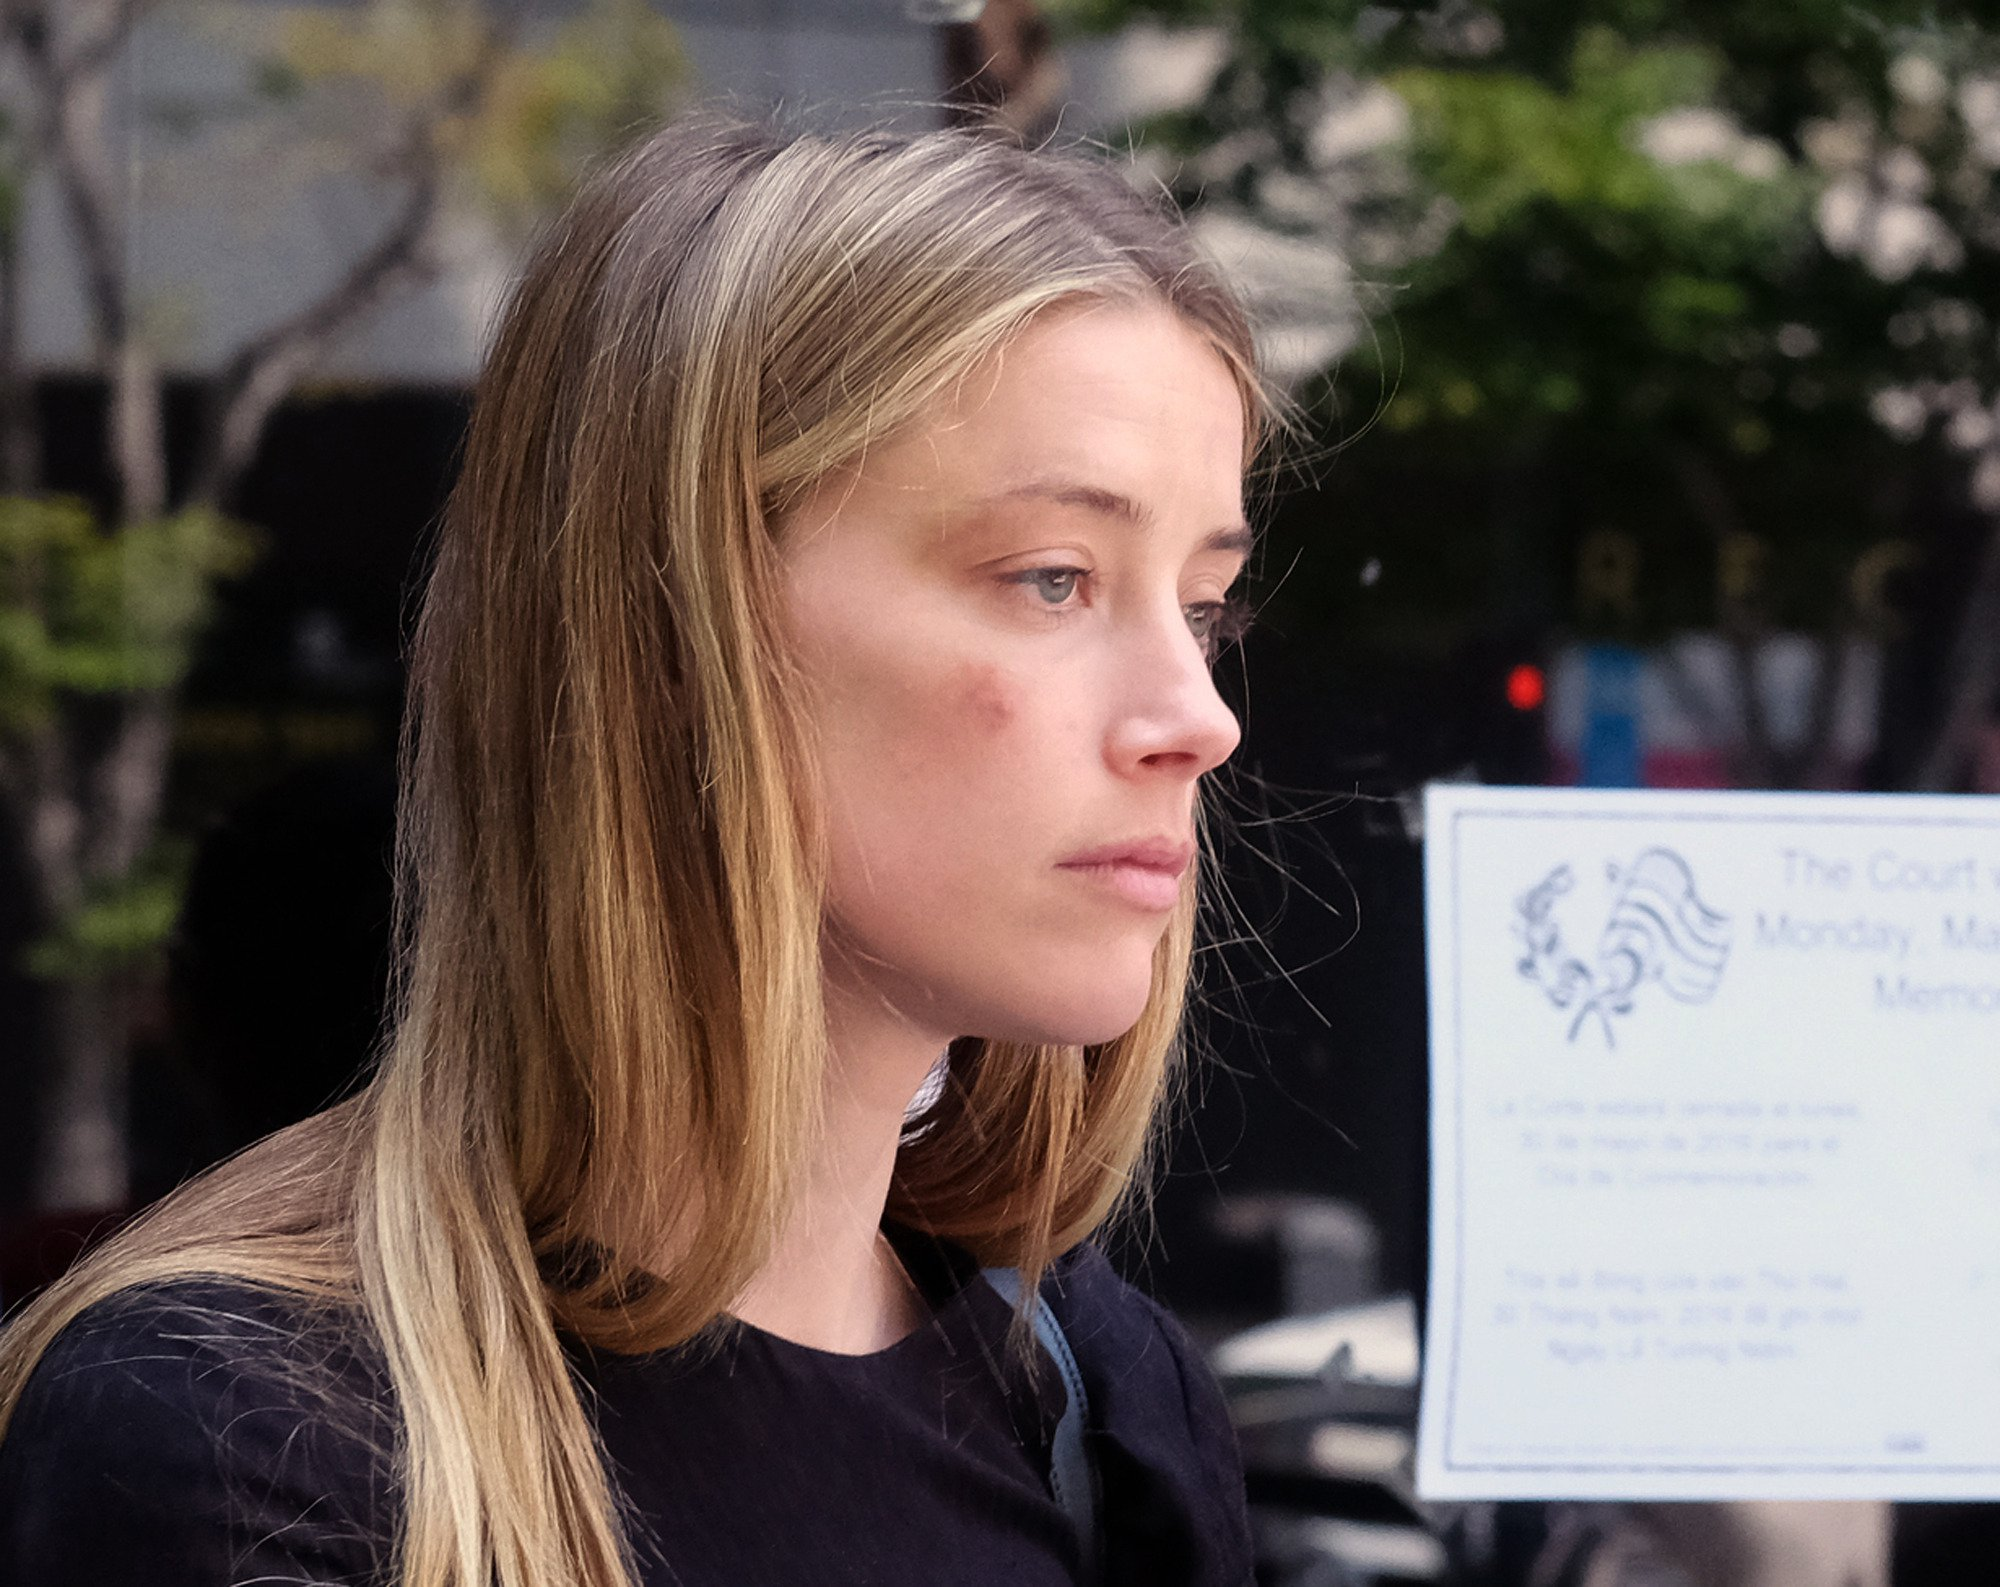 Amber Heard Releases First Statement On Johnny Depp Abuse Claims PA 26459820 1